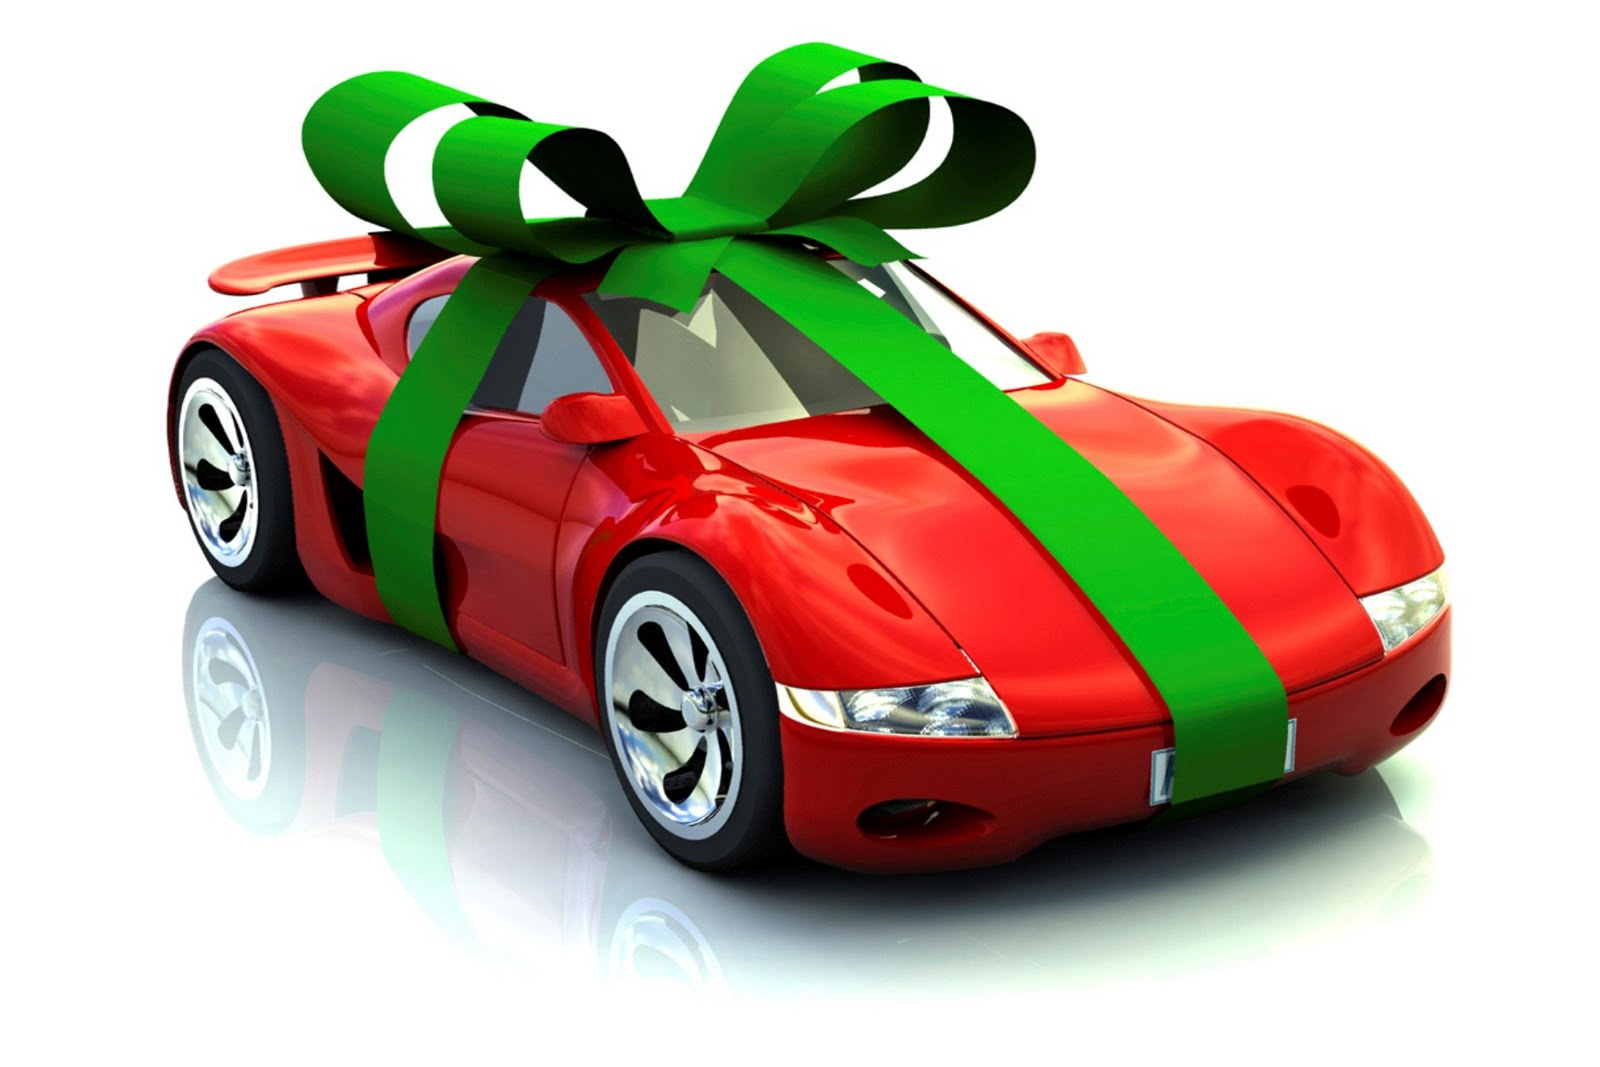 buying a car, car sales, trade-in, vehicles, first car, new car